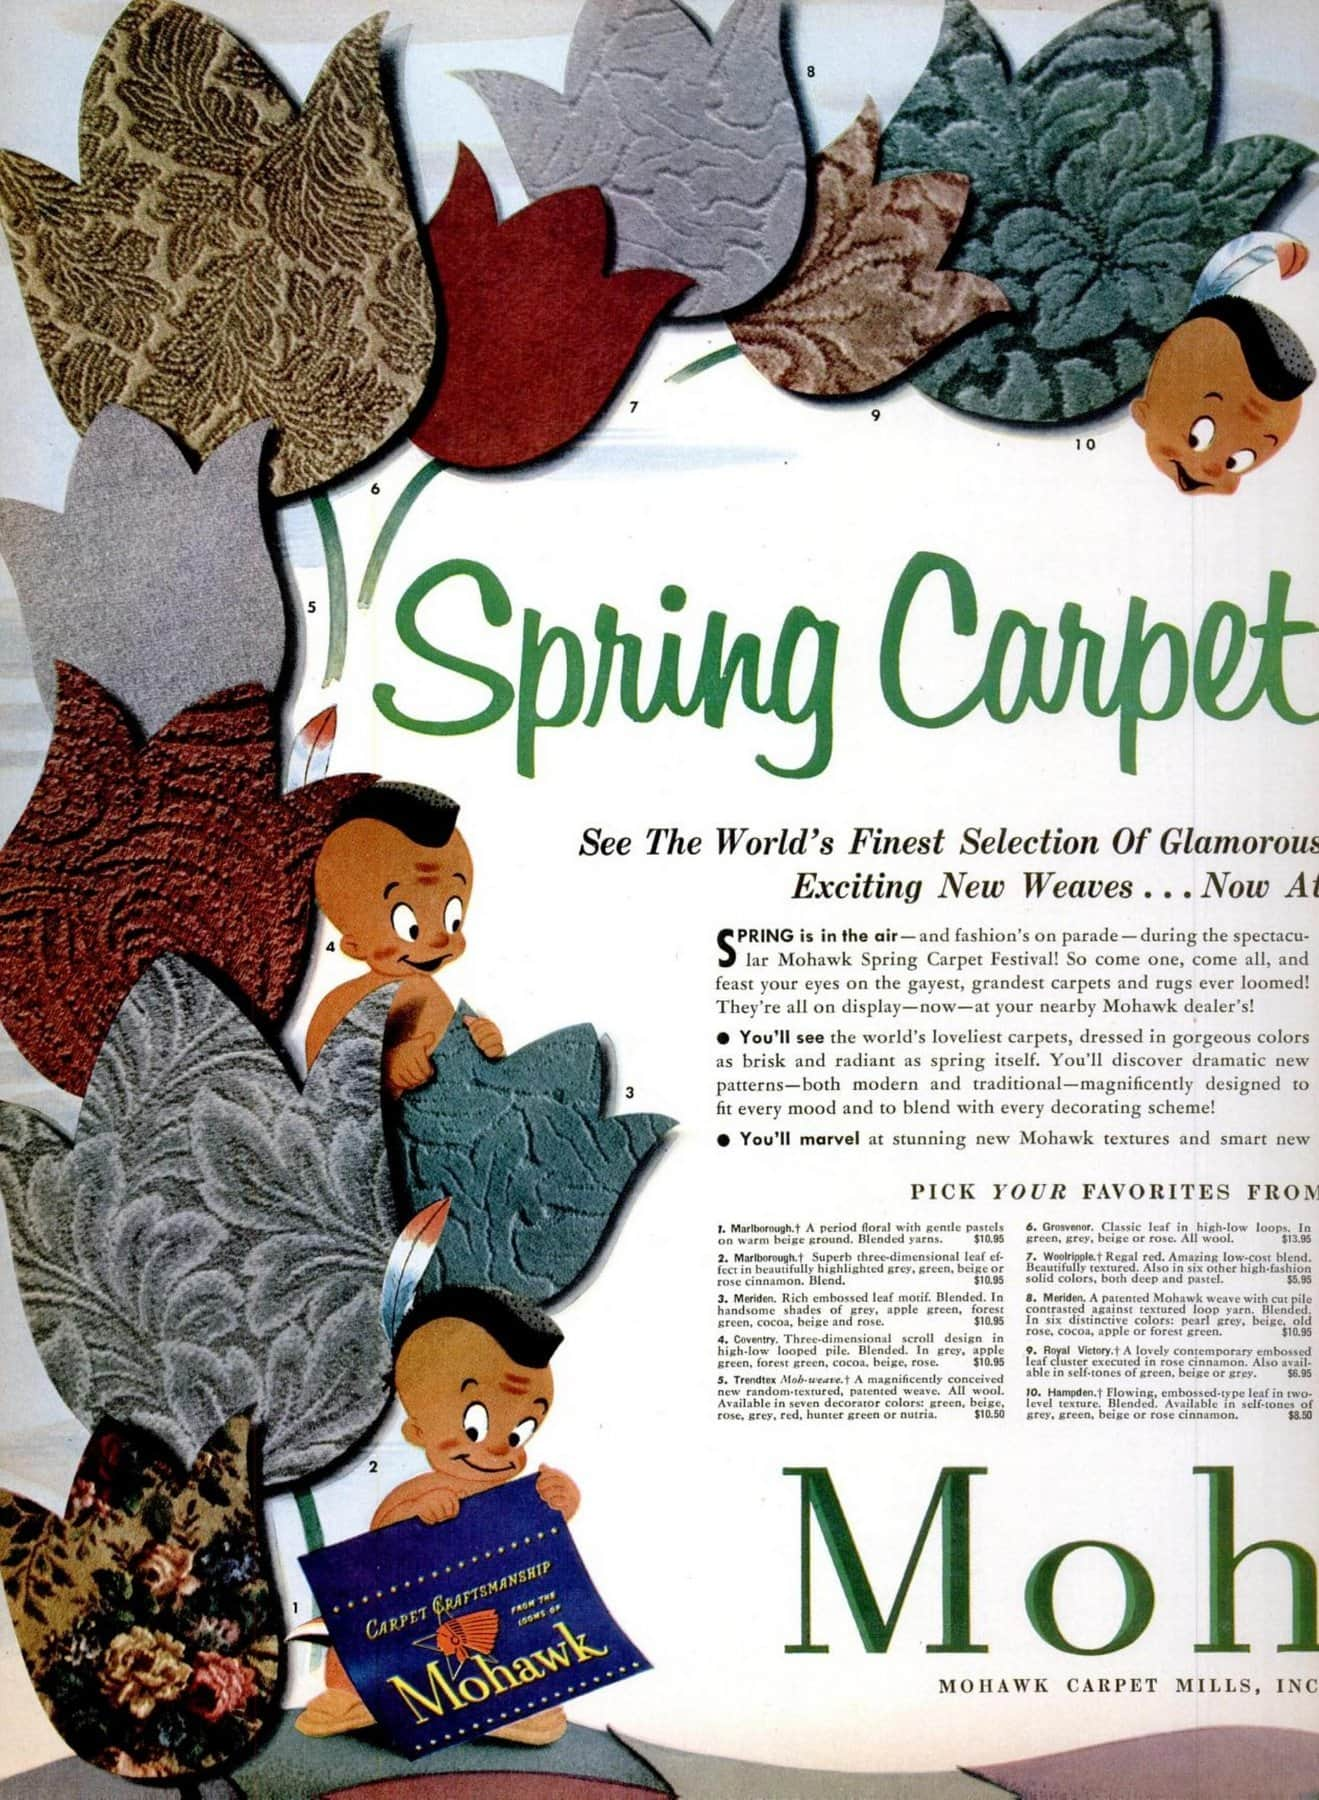 Vintage 1953 Mohawk carpet including textured and carved styles (1)